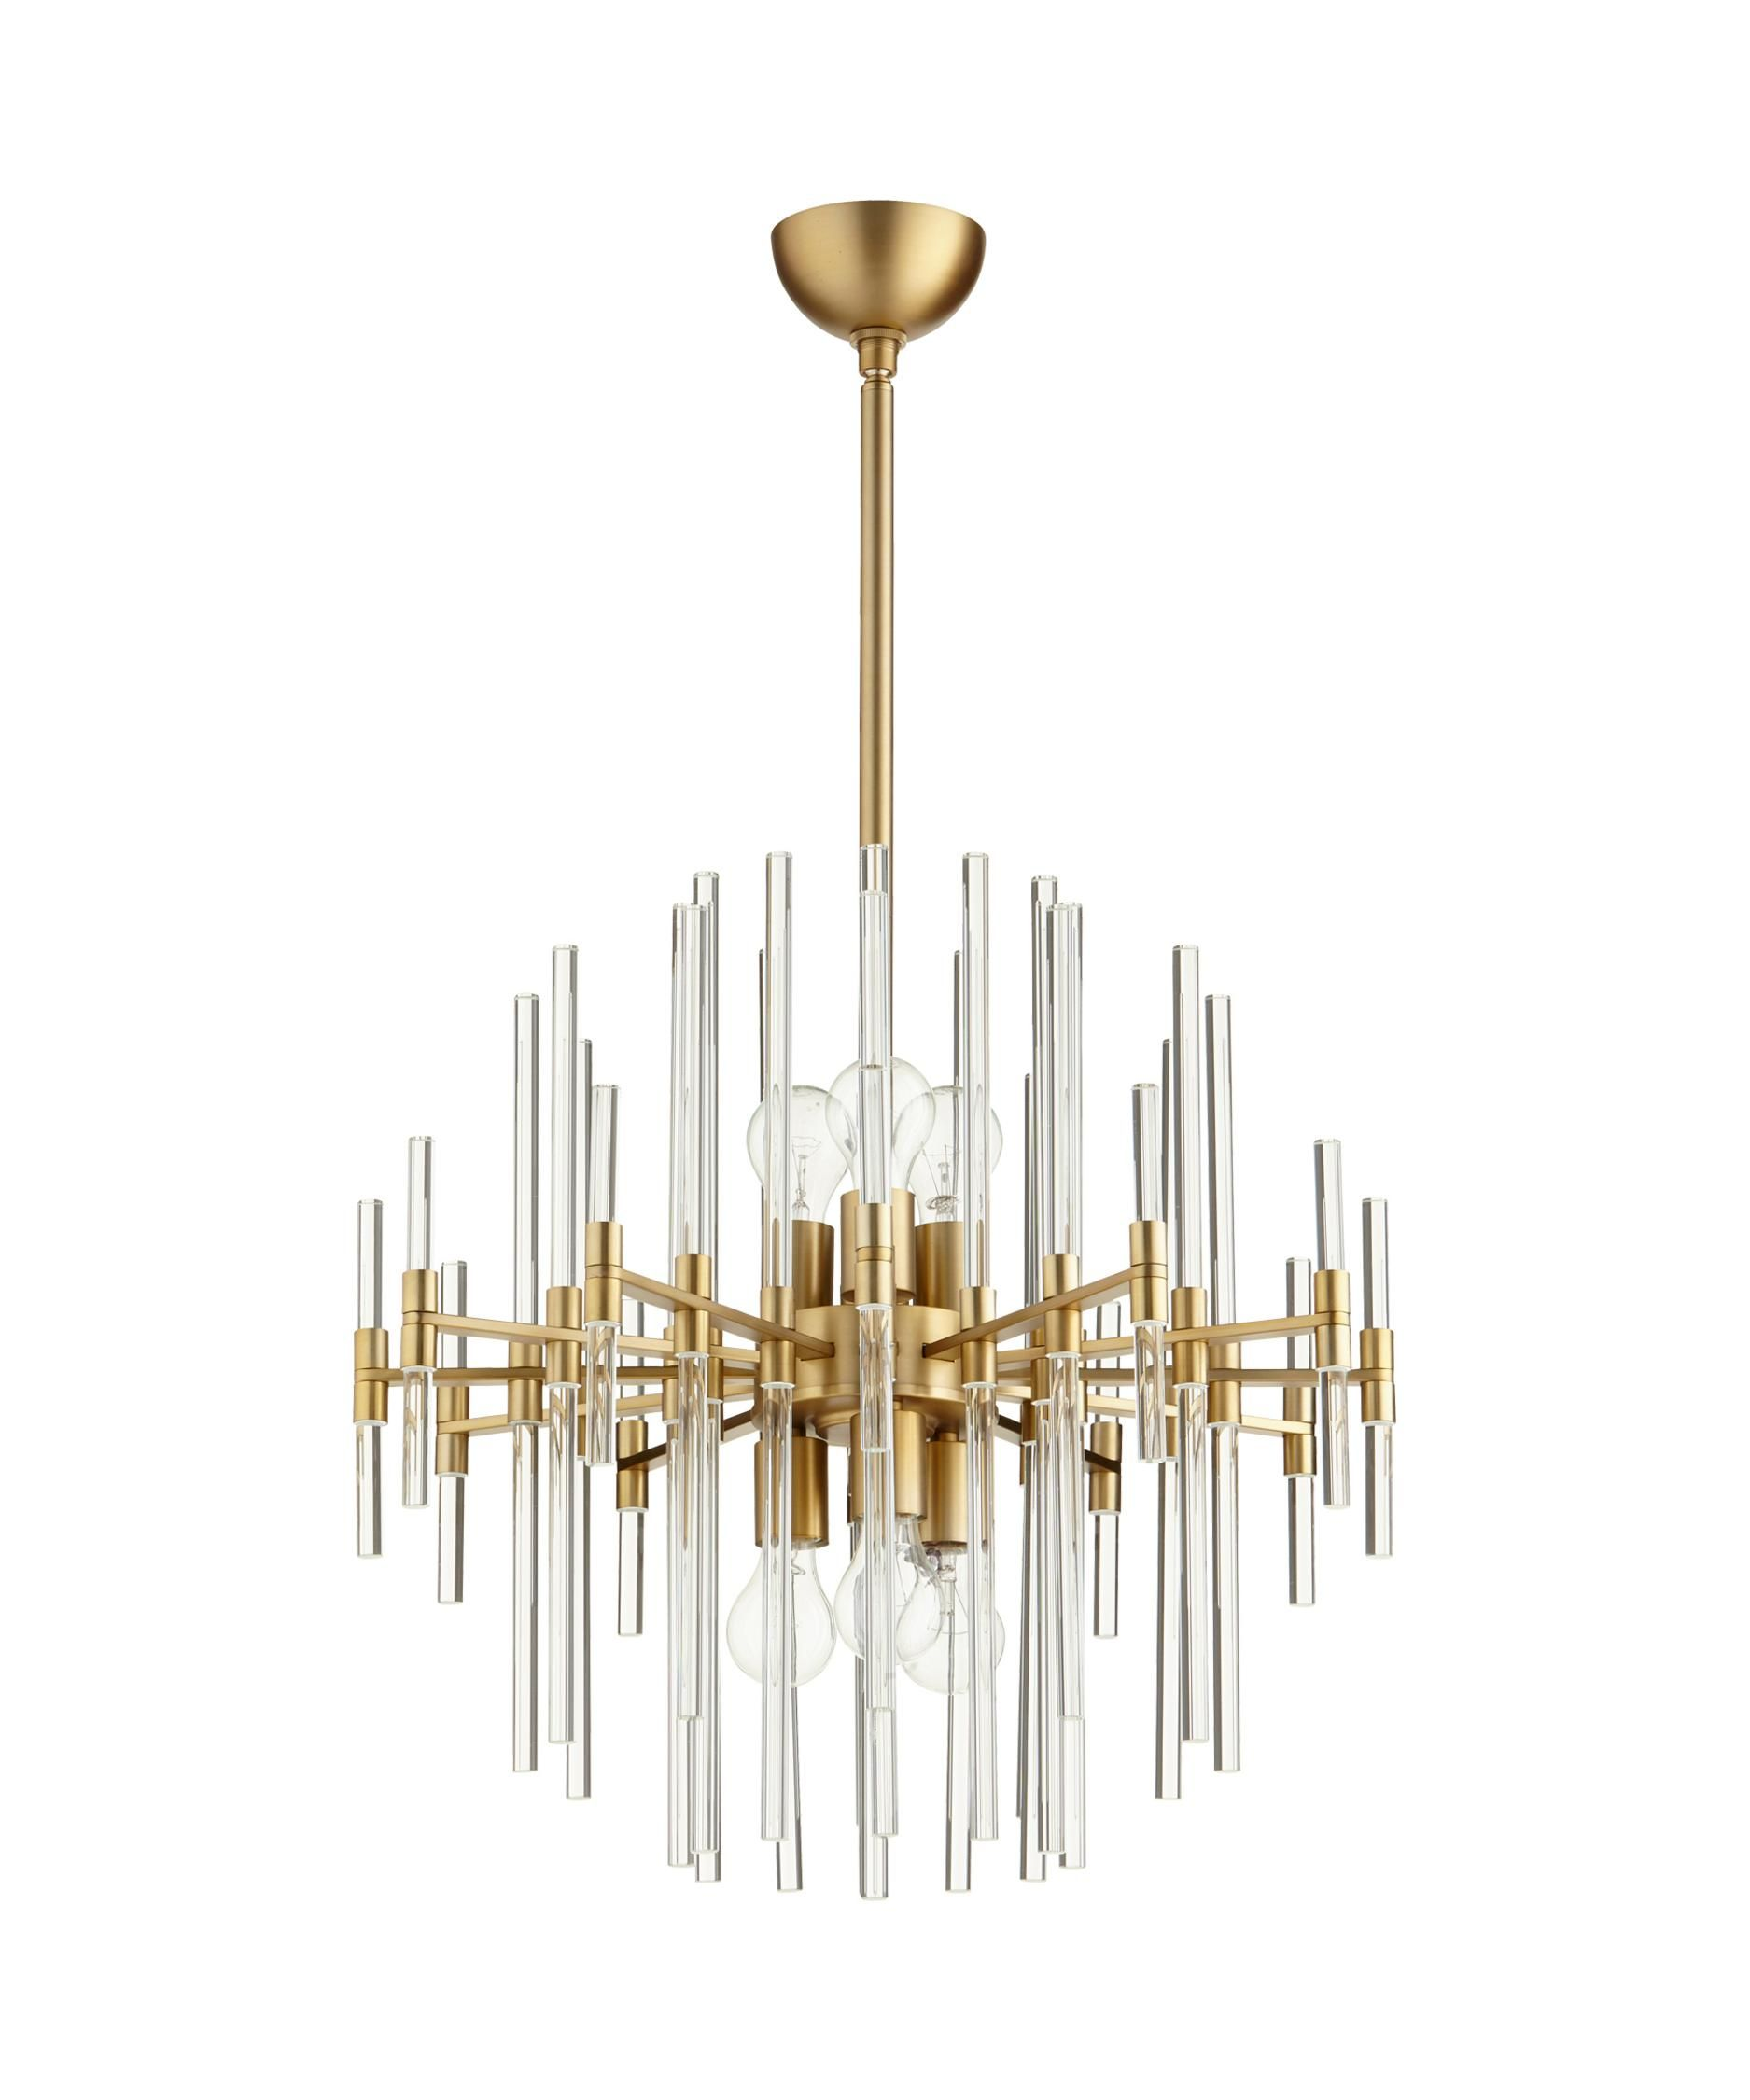 Cyan design 09223 quebec 23 inch chandelier